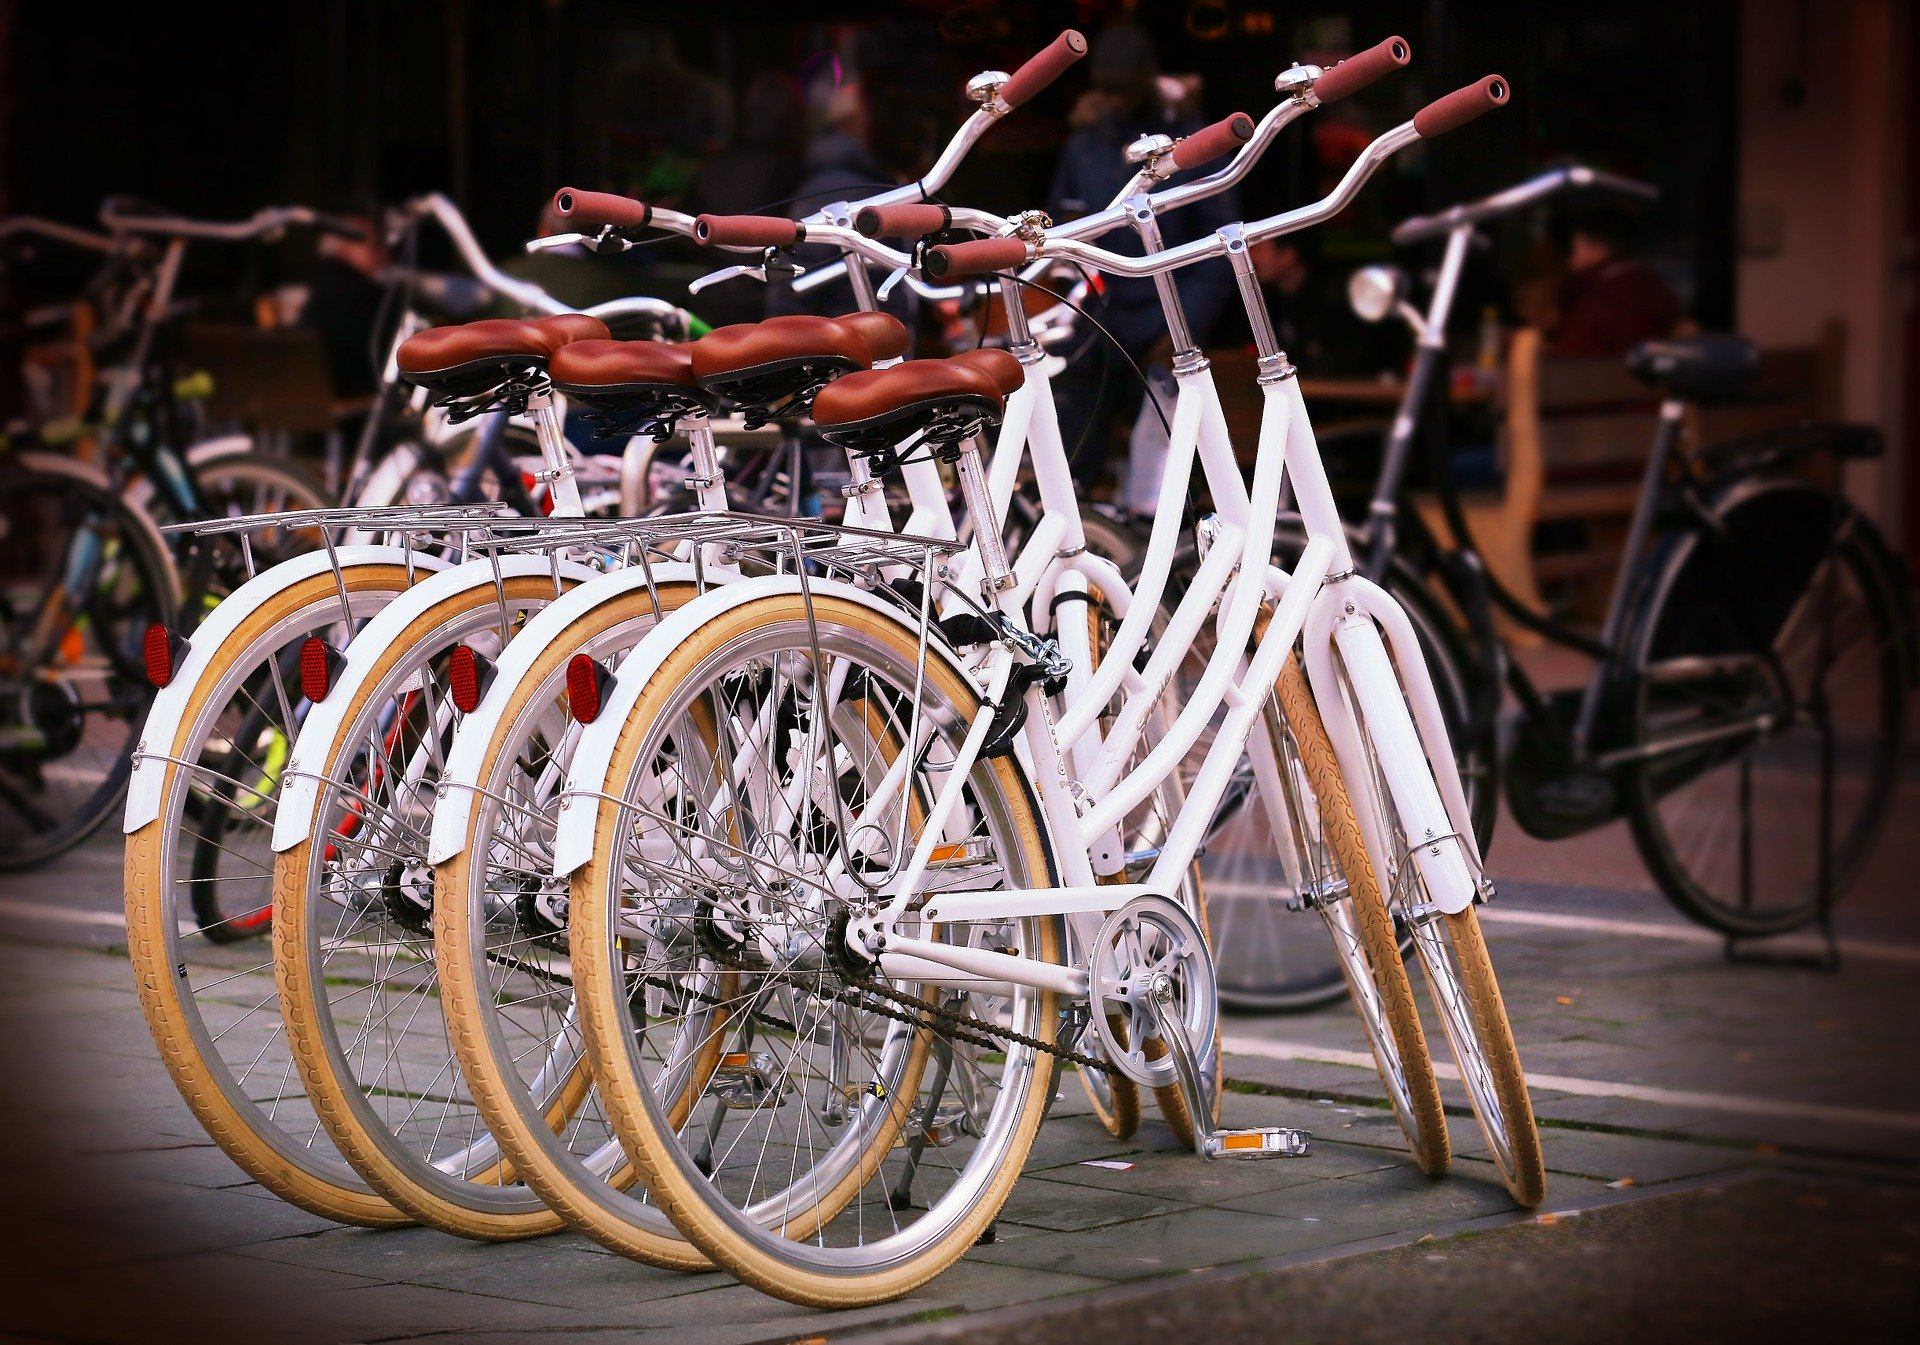 bicycles-737190_1920 (2)